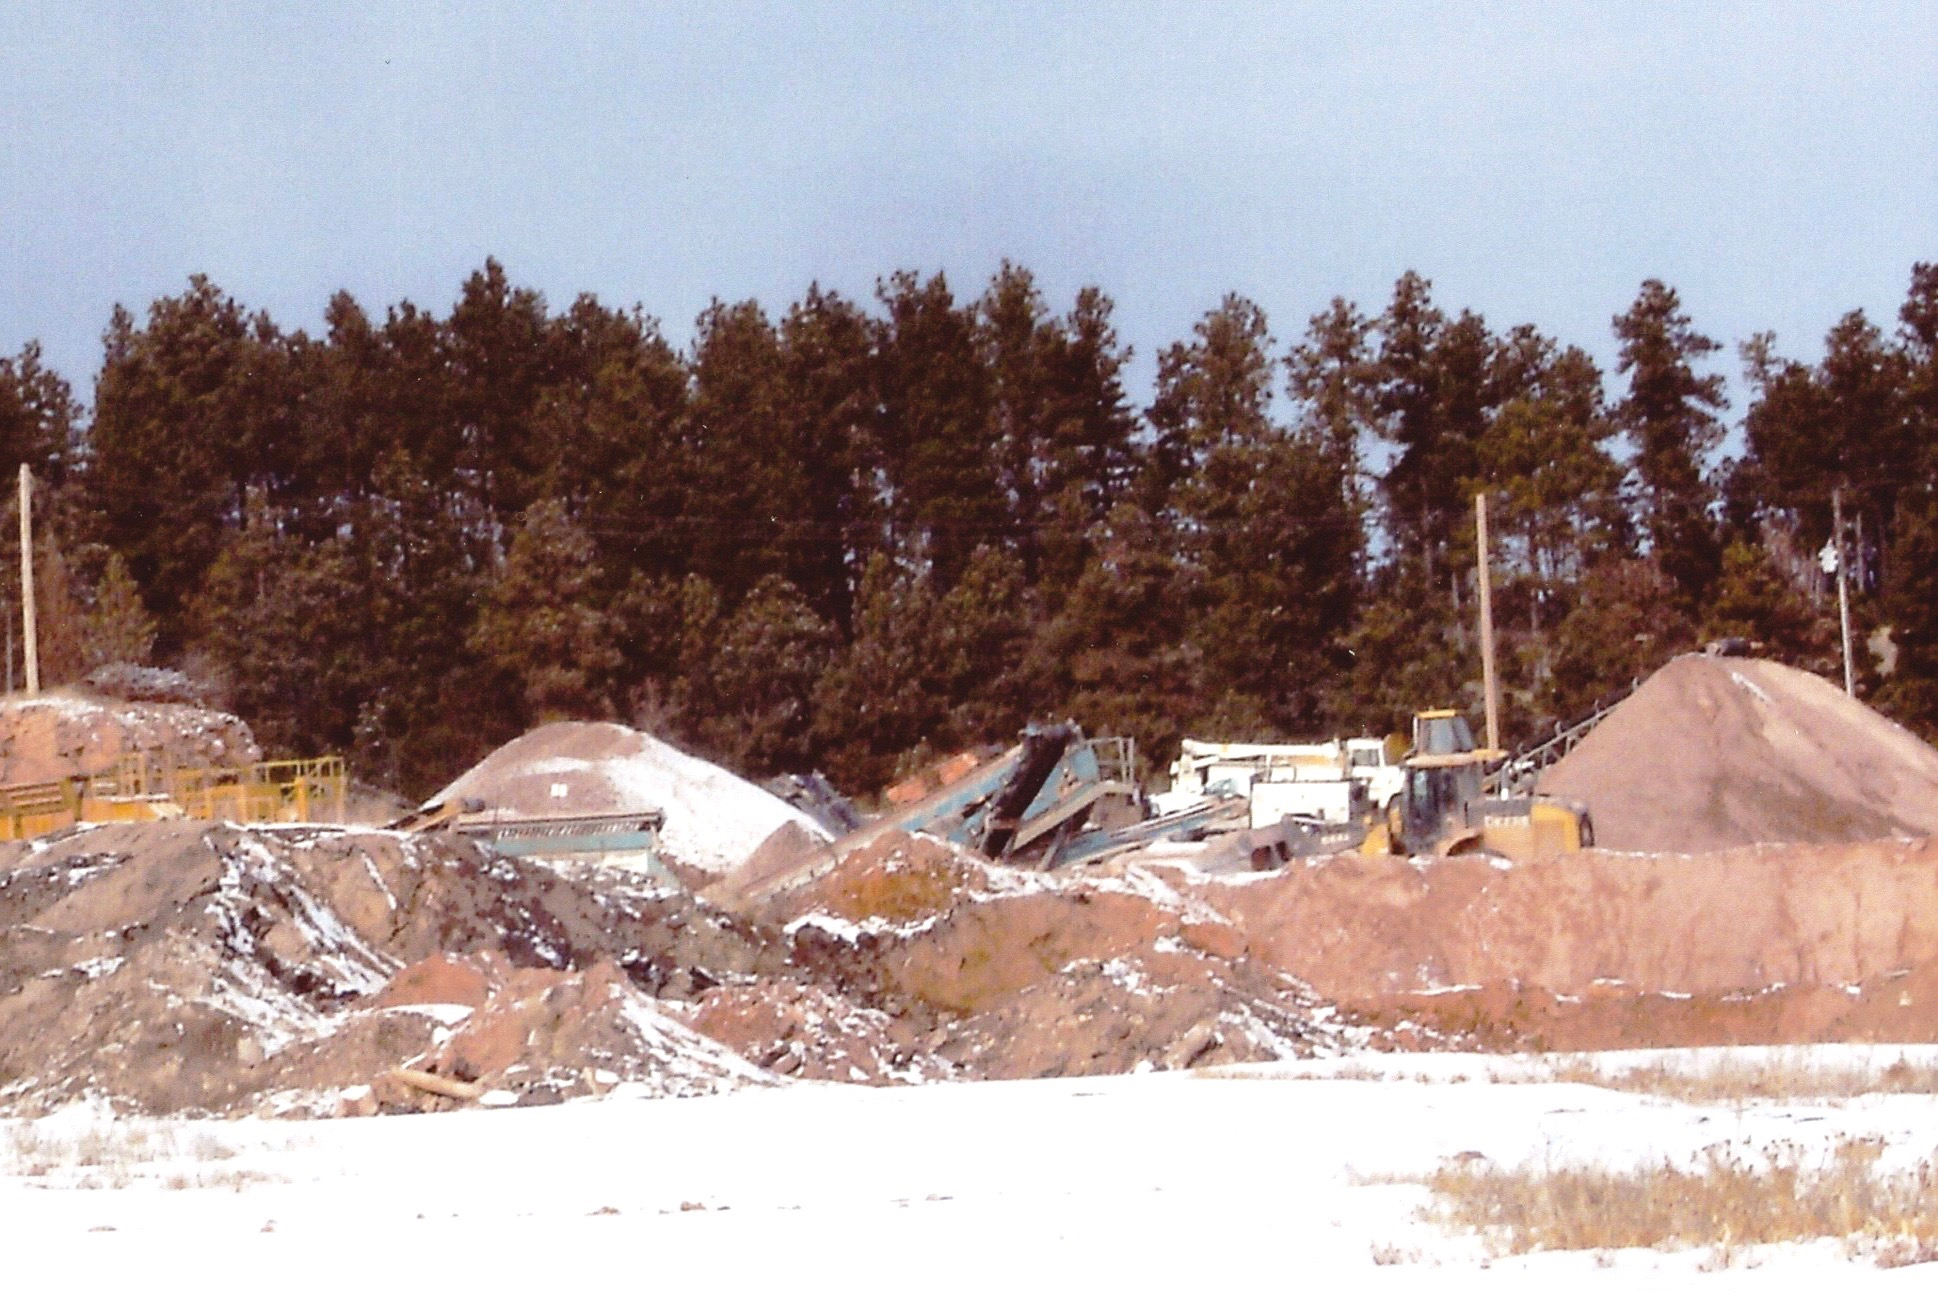 Native Sun News: Opponents fight quarry expansion in Black Hills